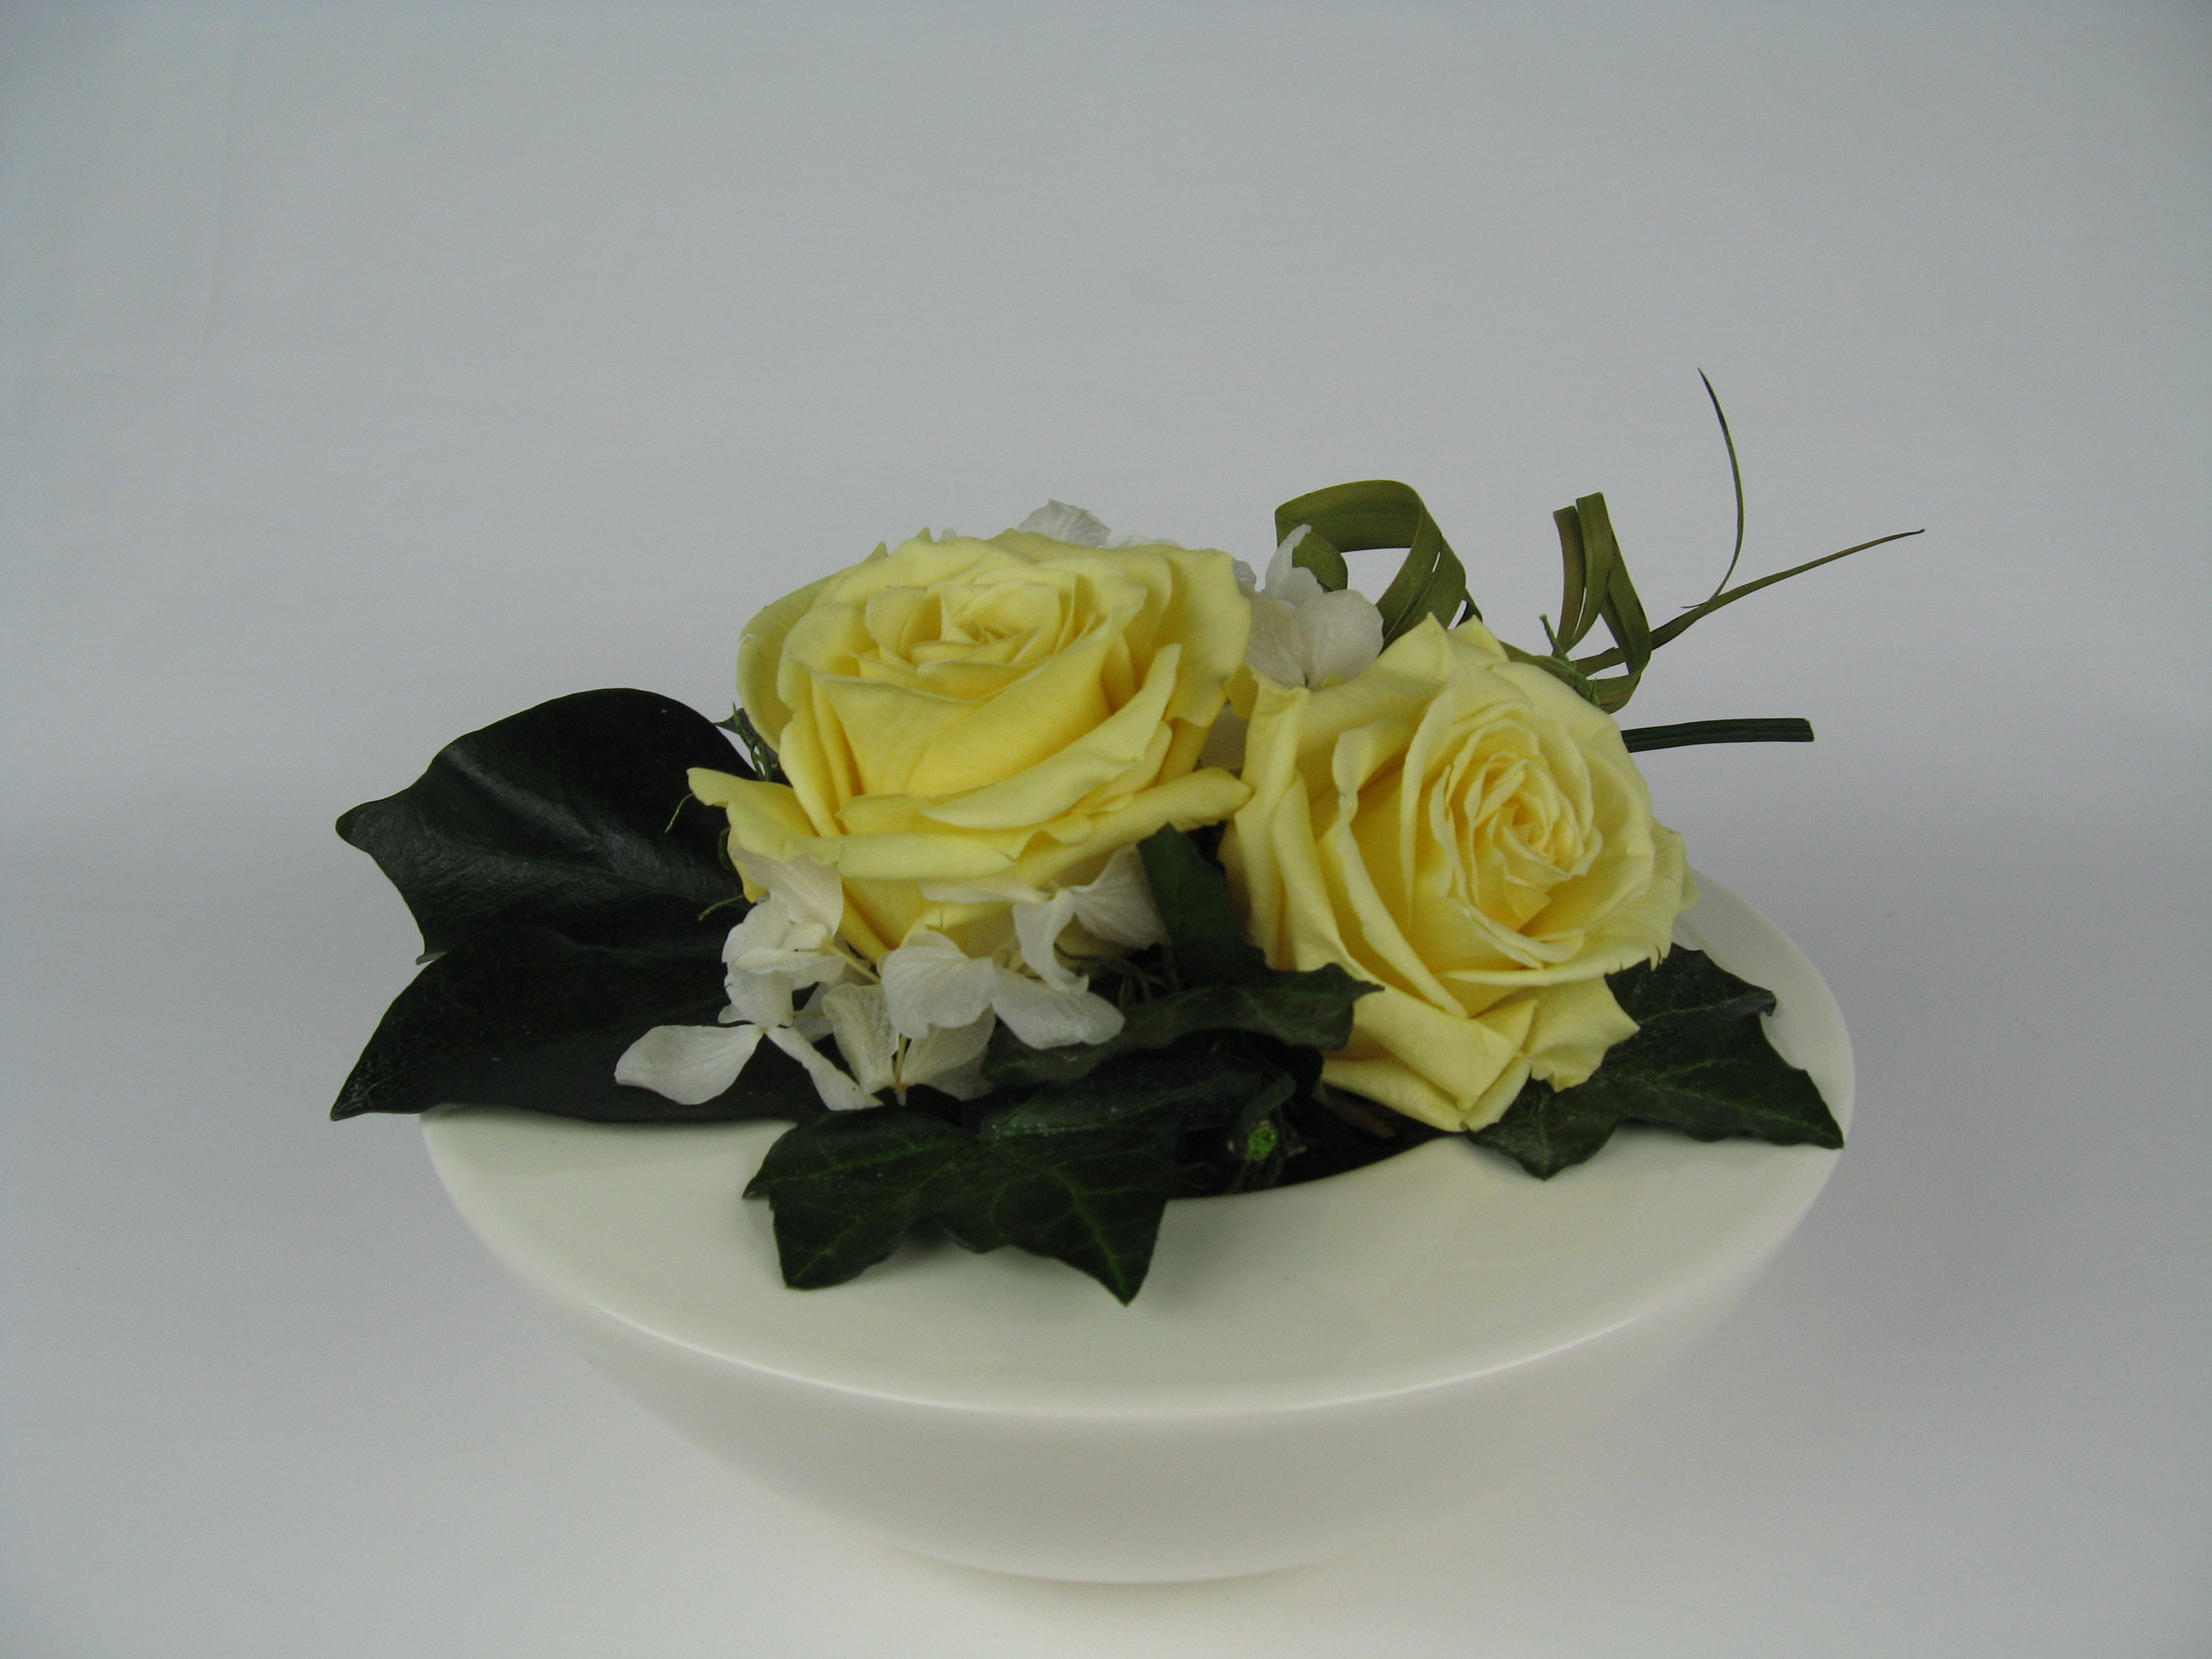 Die stilvolle dekoration decoflorales - Stilvolle dekoration ...